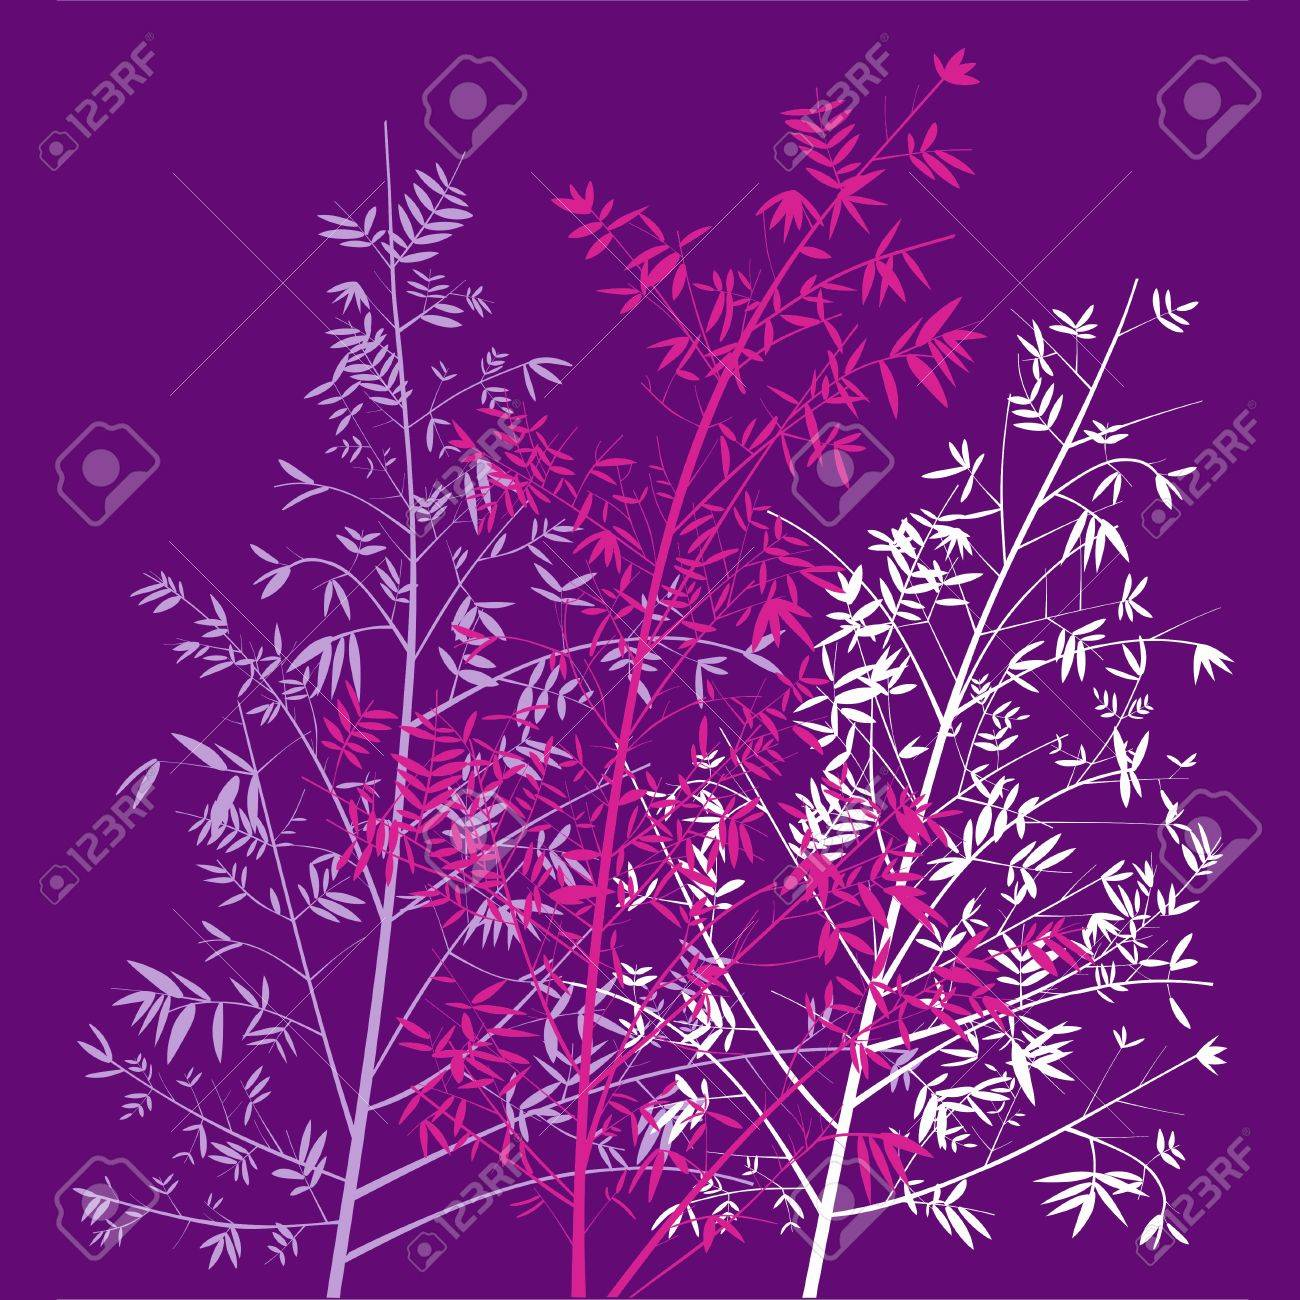 Bamboo Plants On Violet Background Stock Photo Picture And